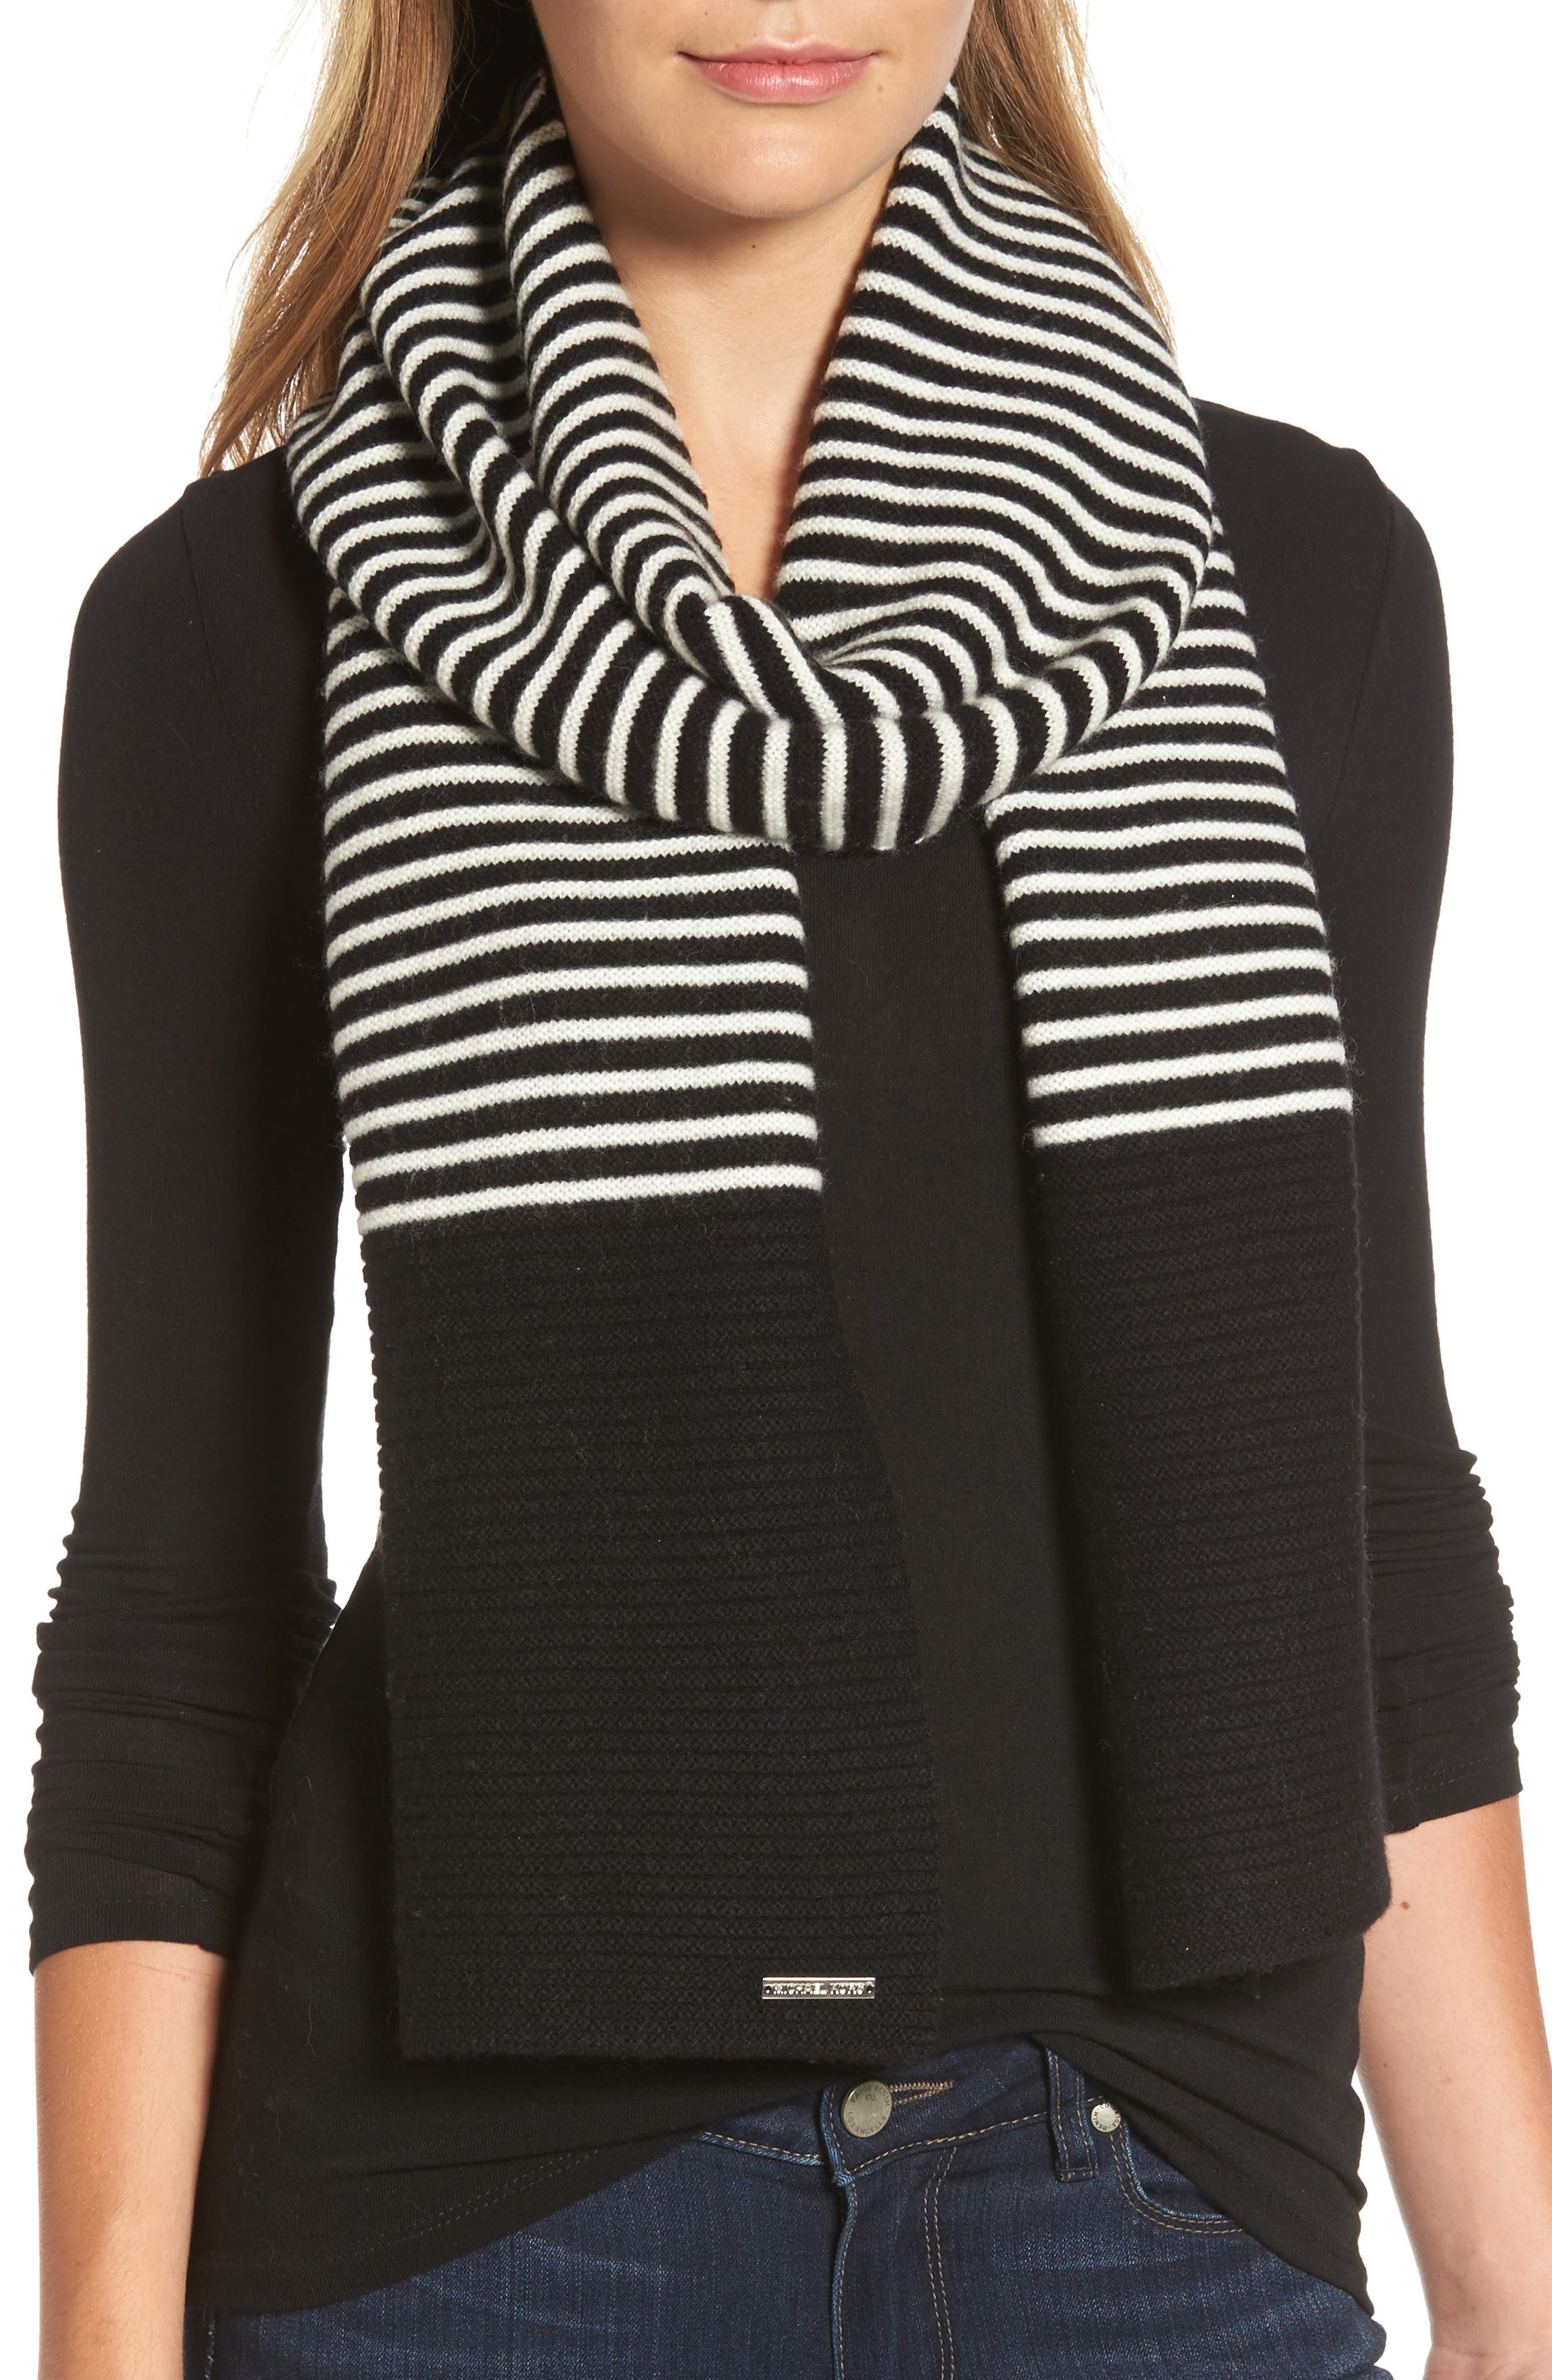 Double Links Wool & Cashmere Scarf,                         Main,                         color, 001